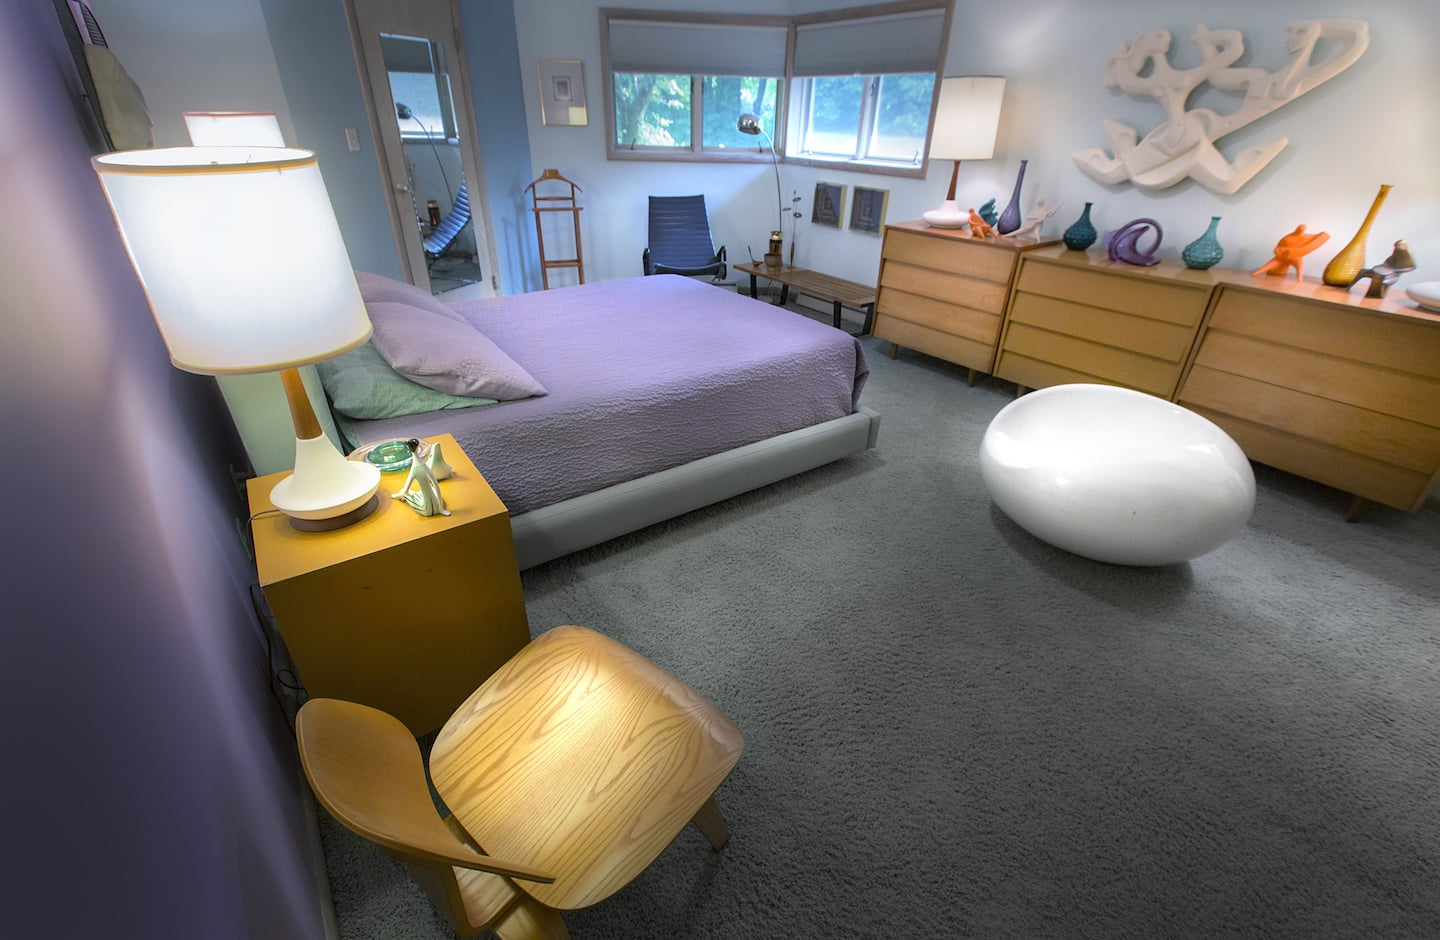 Bedroom with table lamps